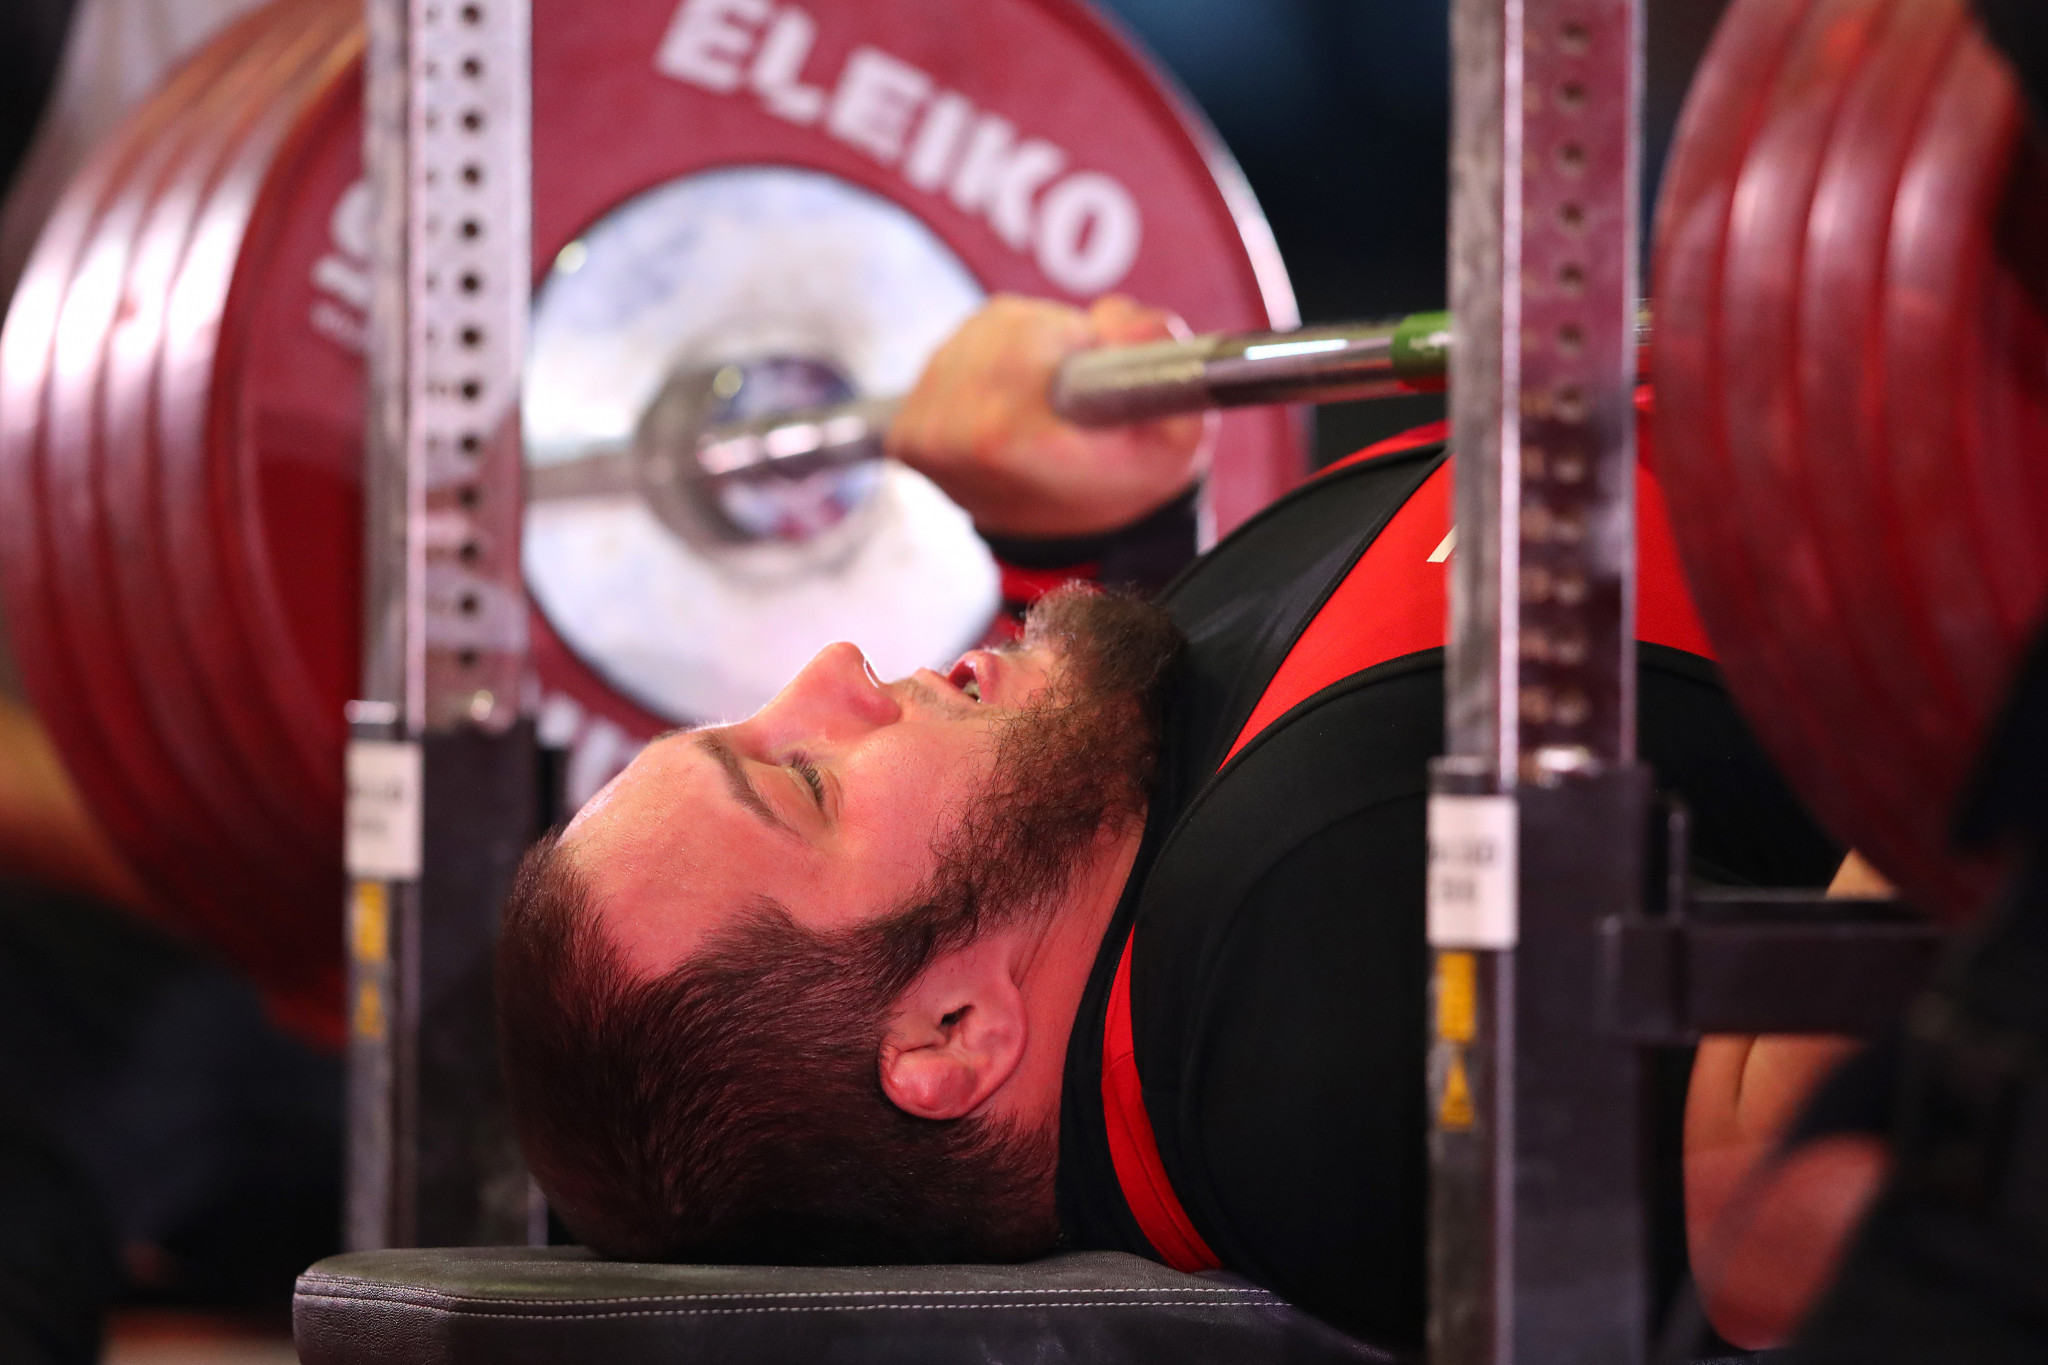 Ukrainian powerlifter Kriukov banned again for competing while suspended